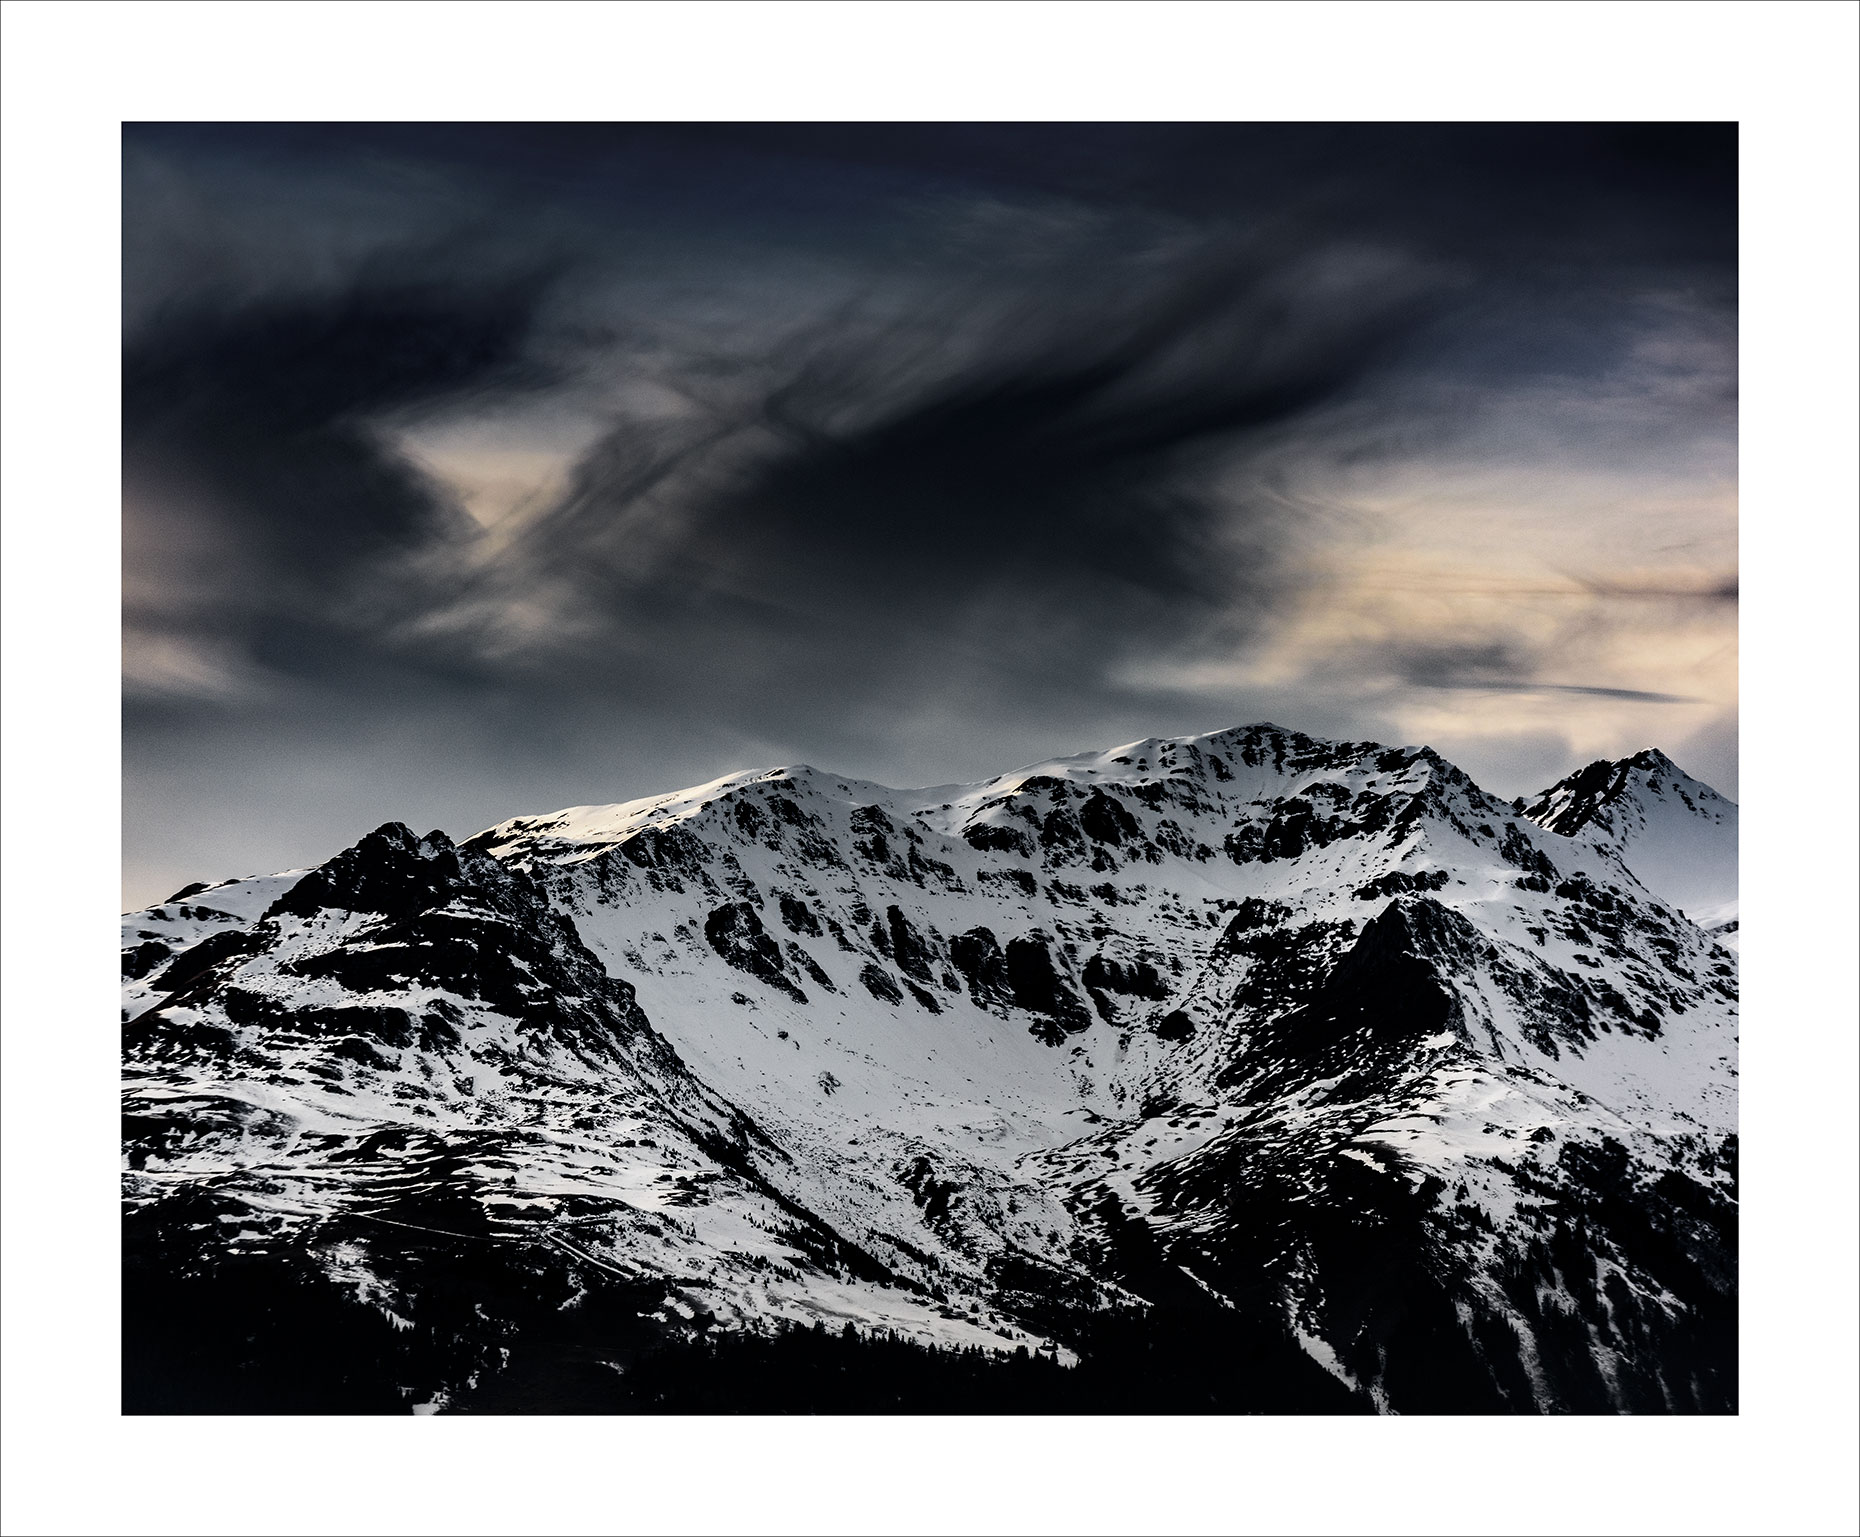 alps-mountain-landscape-photography-edition-print-23